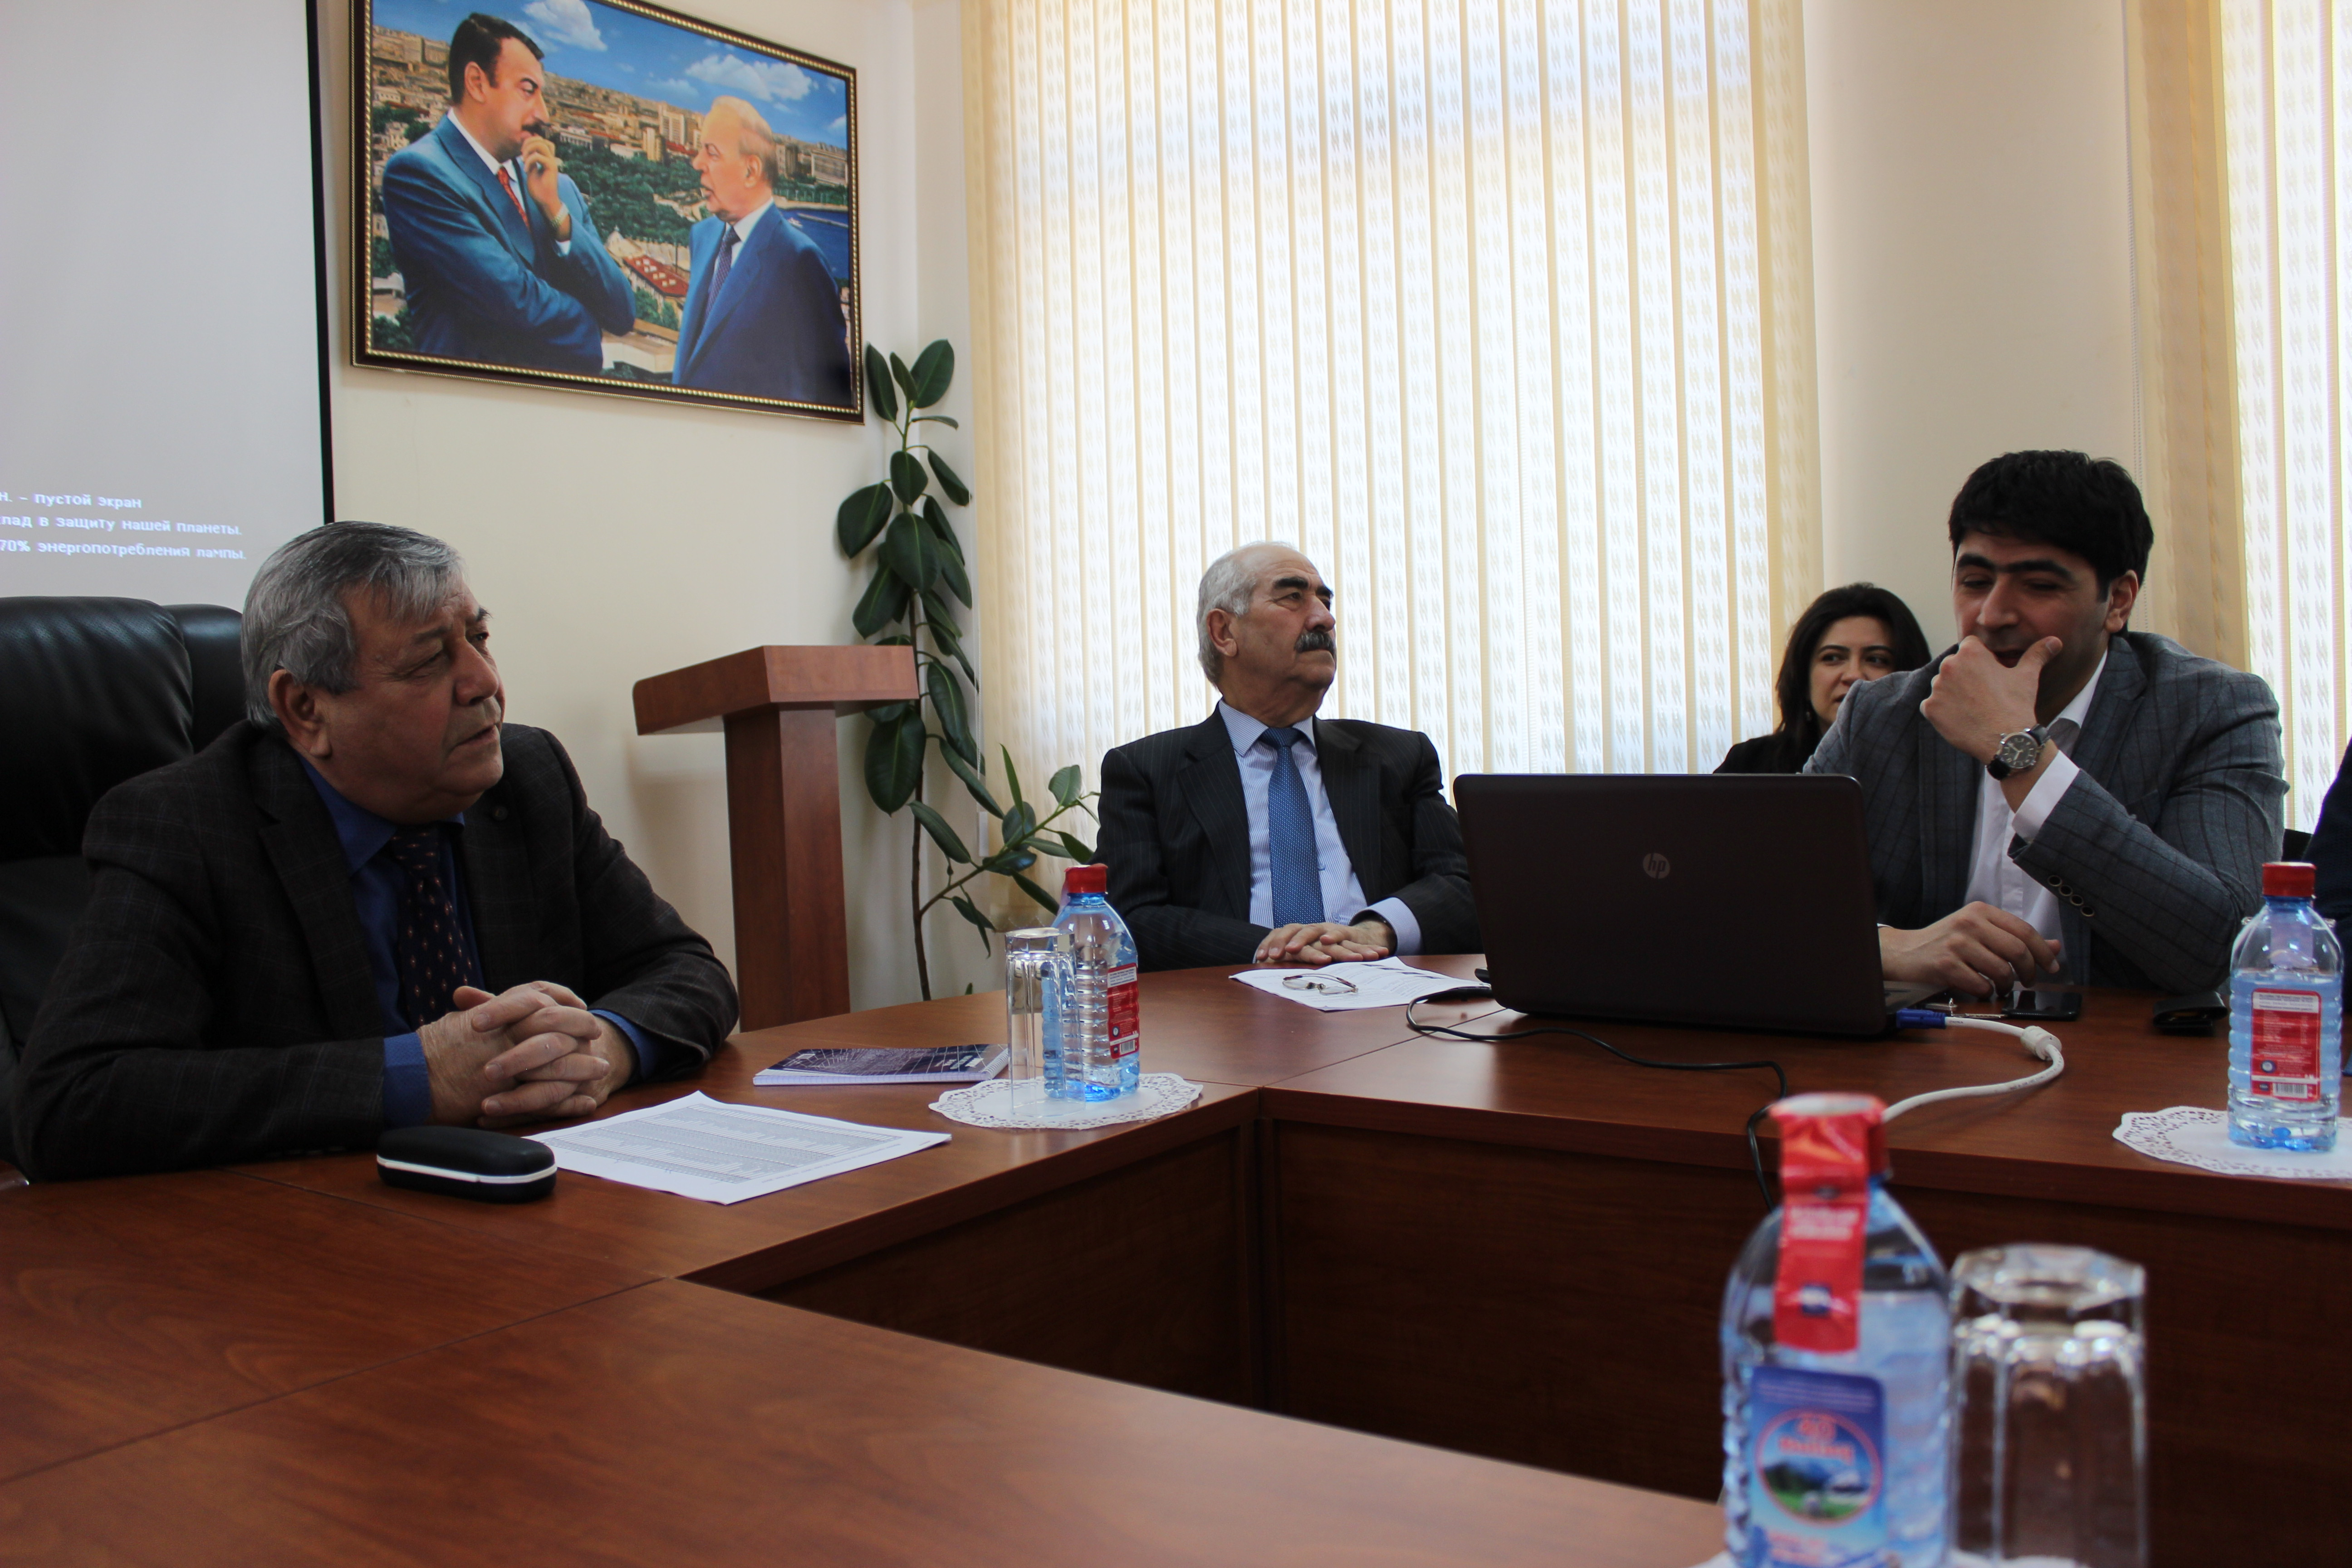 Academician Ramiz Mammadov held a meeting with young scientists and specialists of the institute of geography, which is the director.